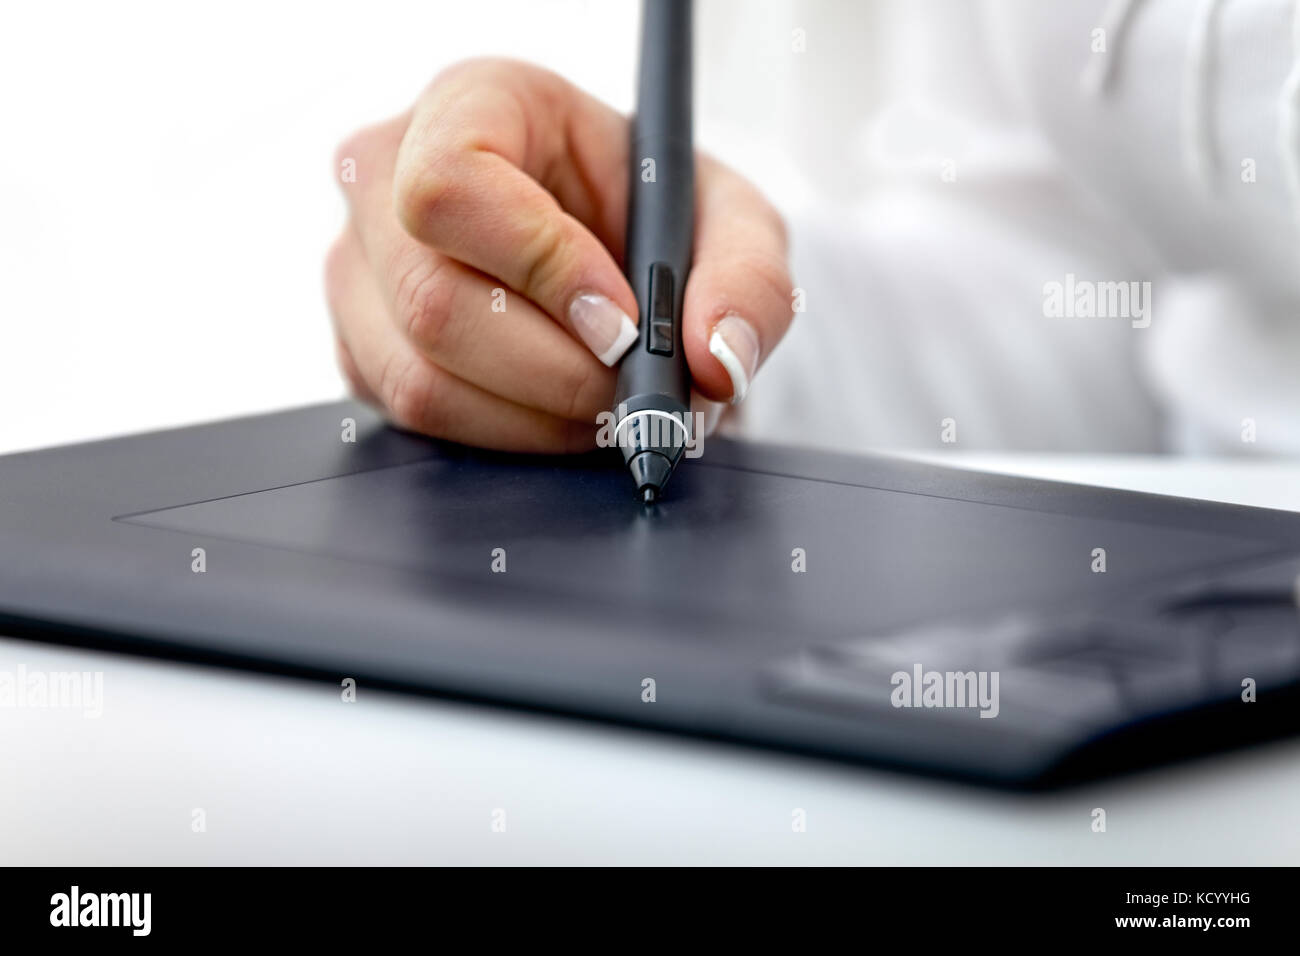 digital graphics tablet and a hand hold a stylus used for graphic